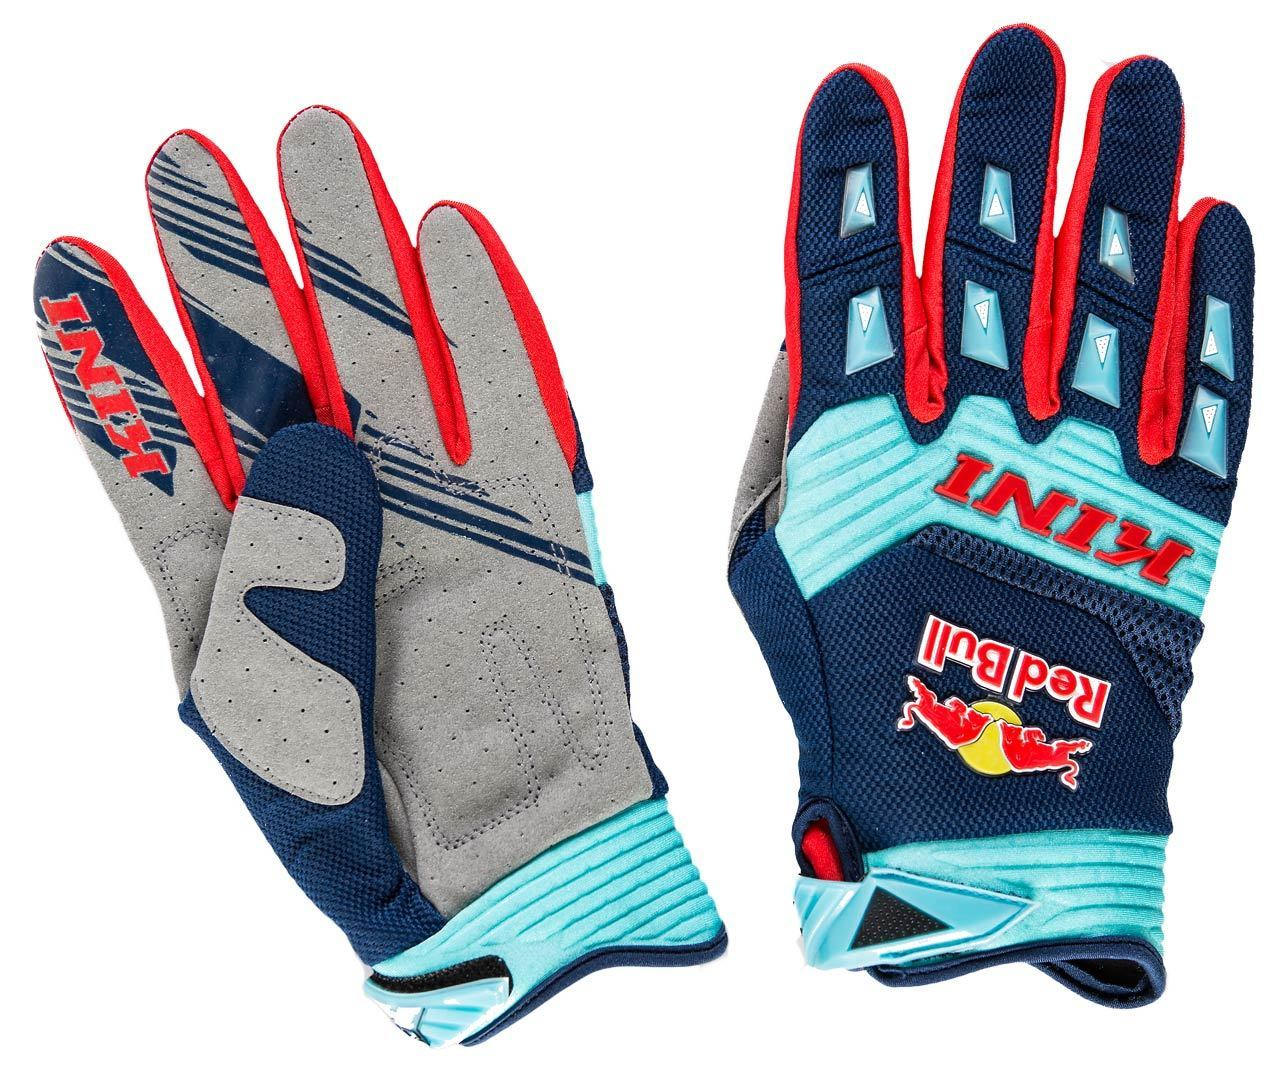 kini-red-bull-competition-gloves-2016-blue-2xl